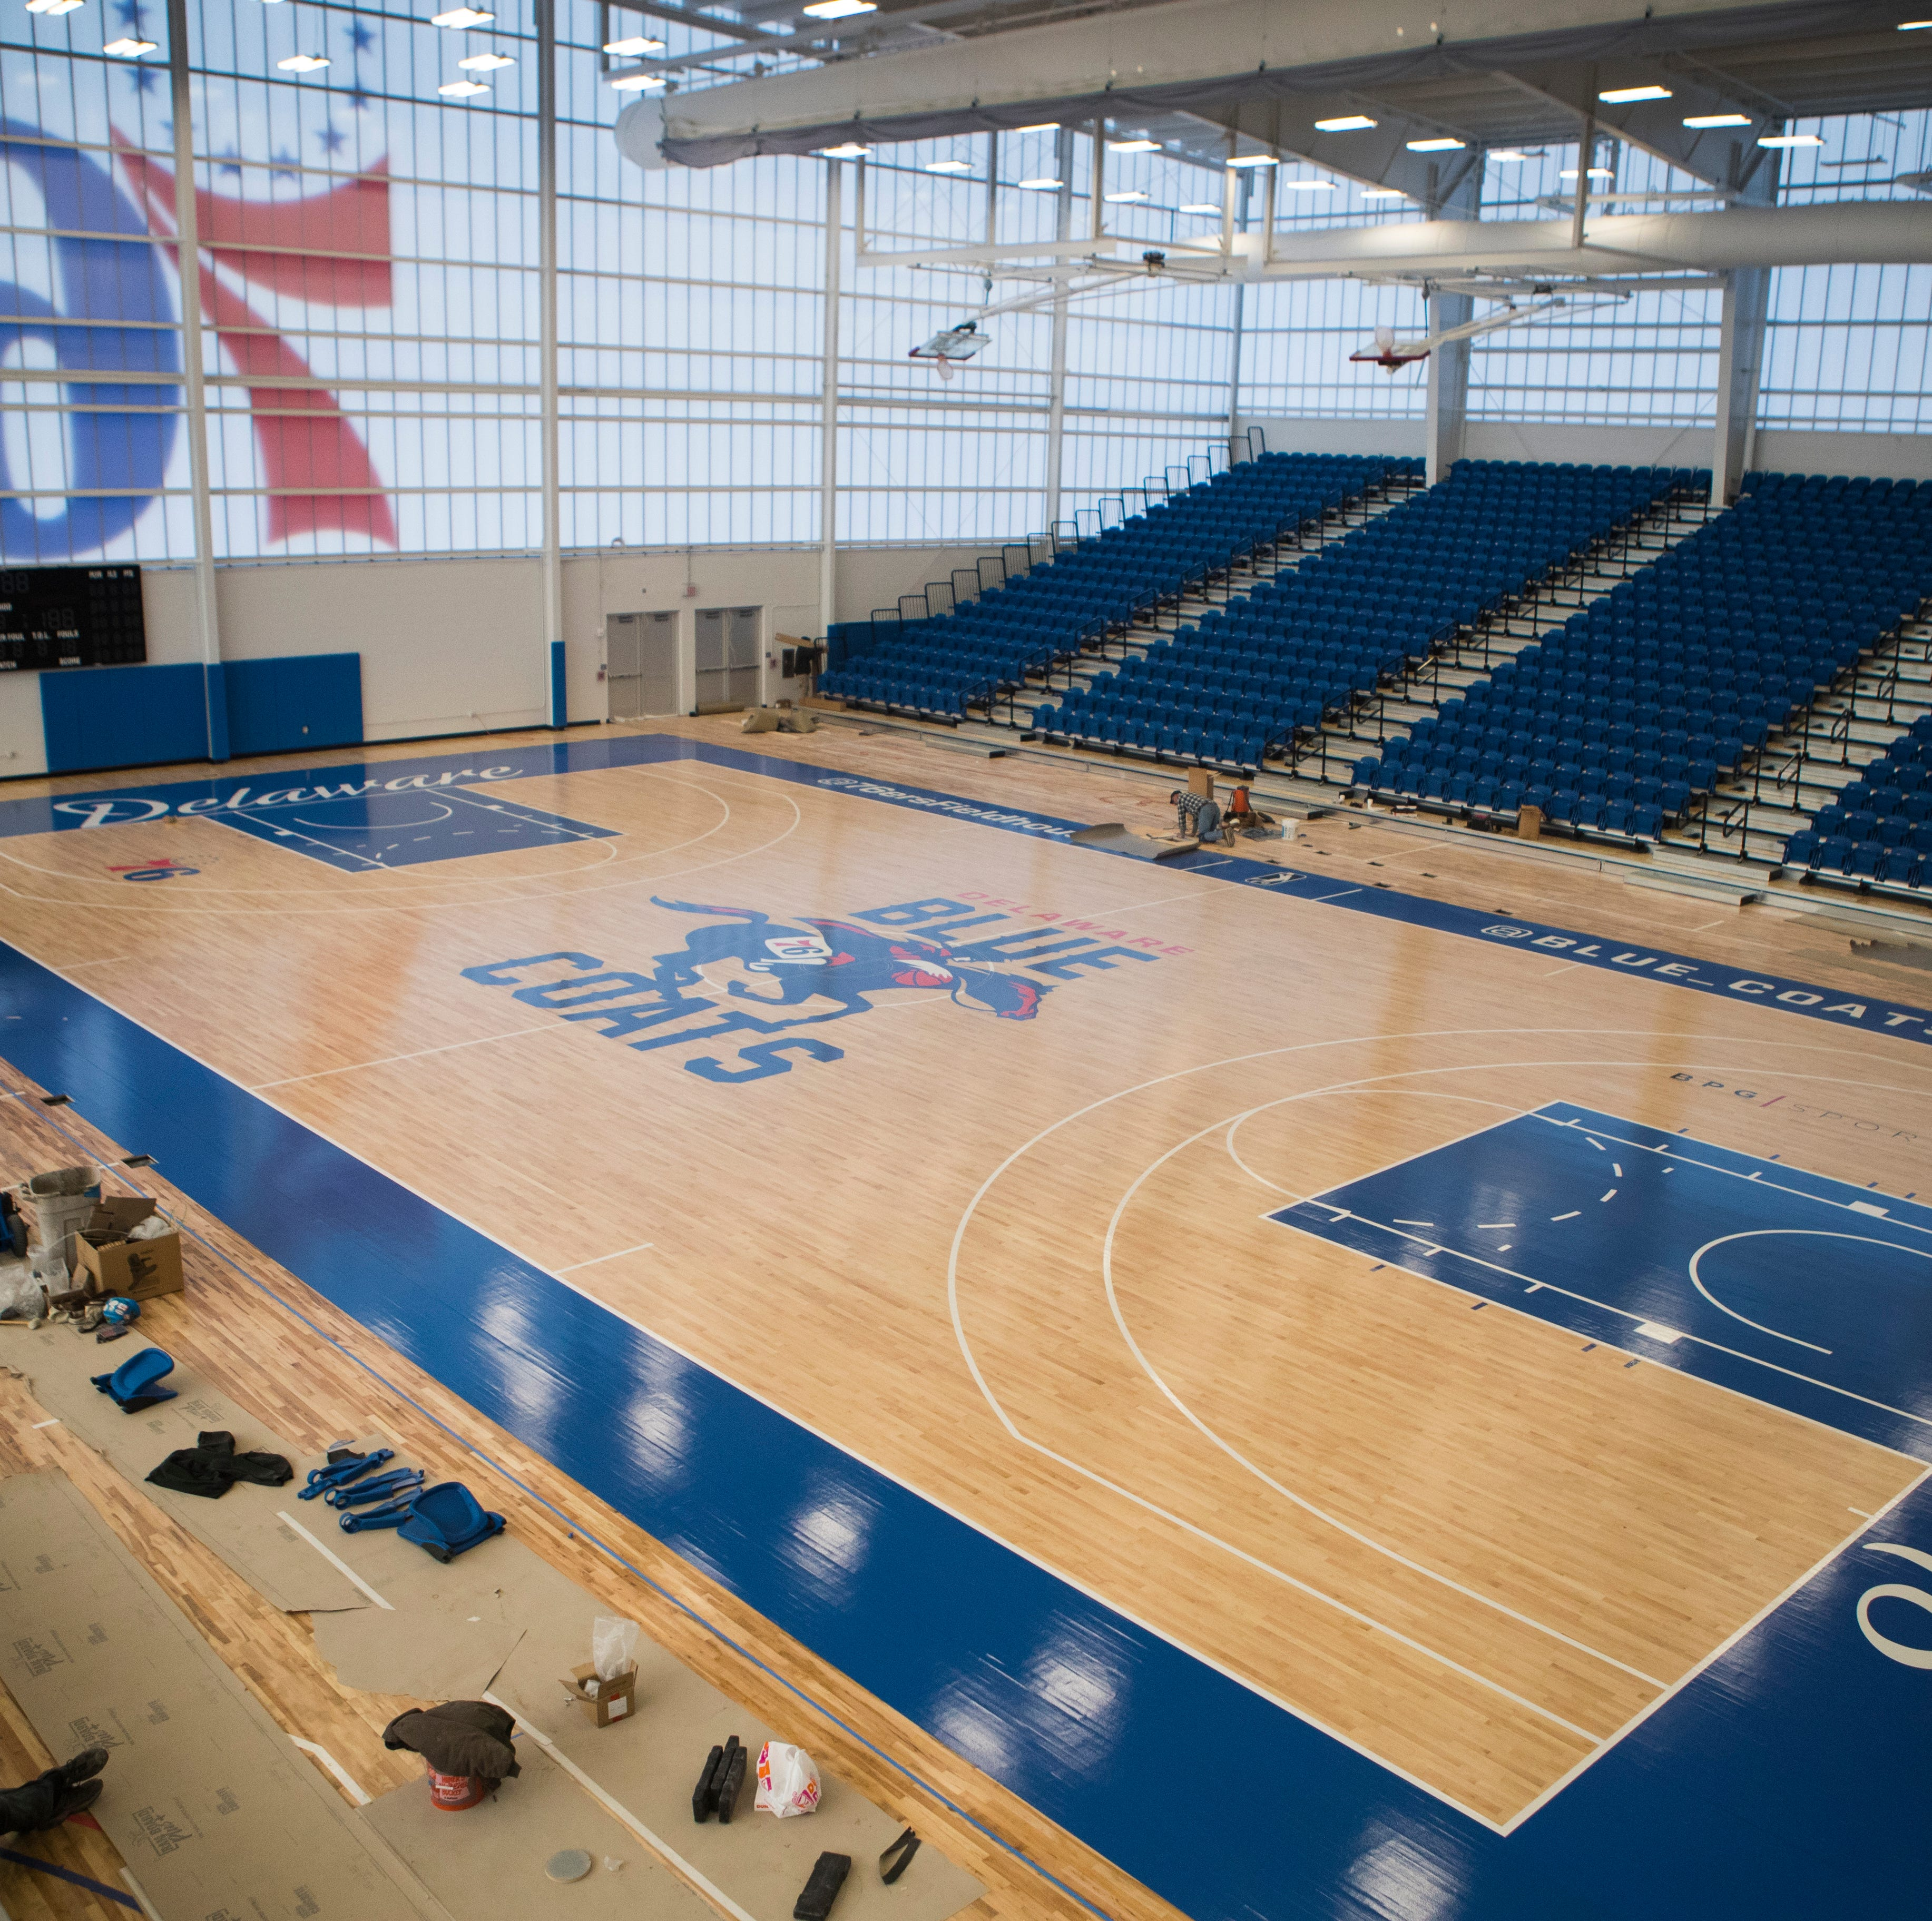 It's time for tip-off in Wilmington's 76ers Fieldhouse